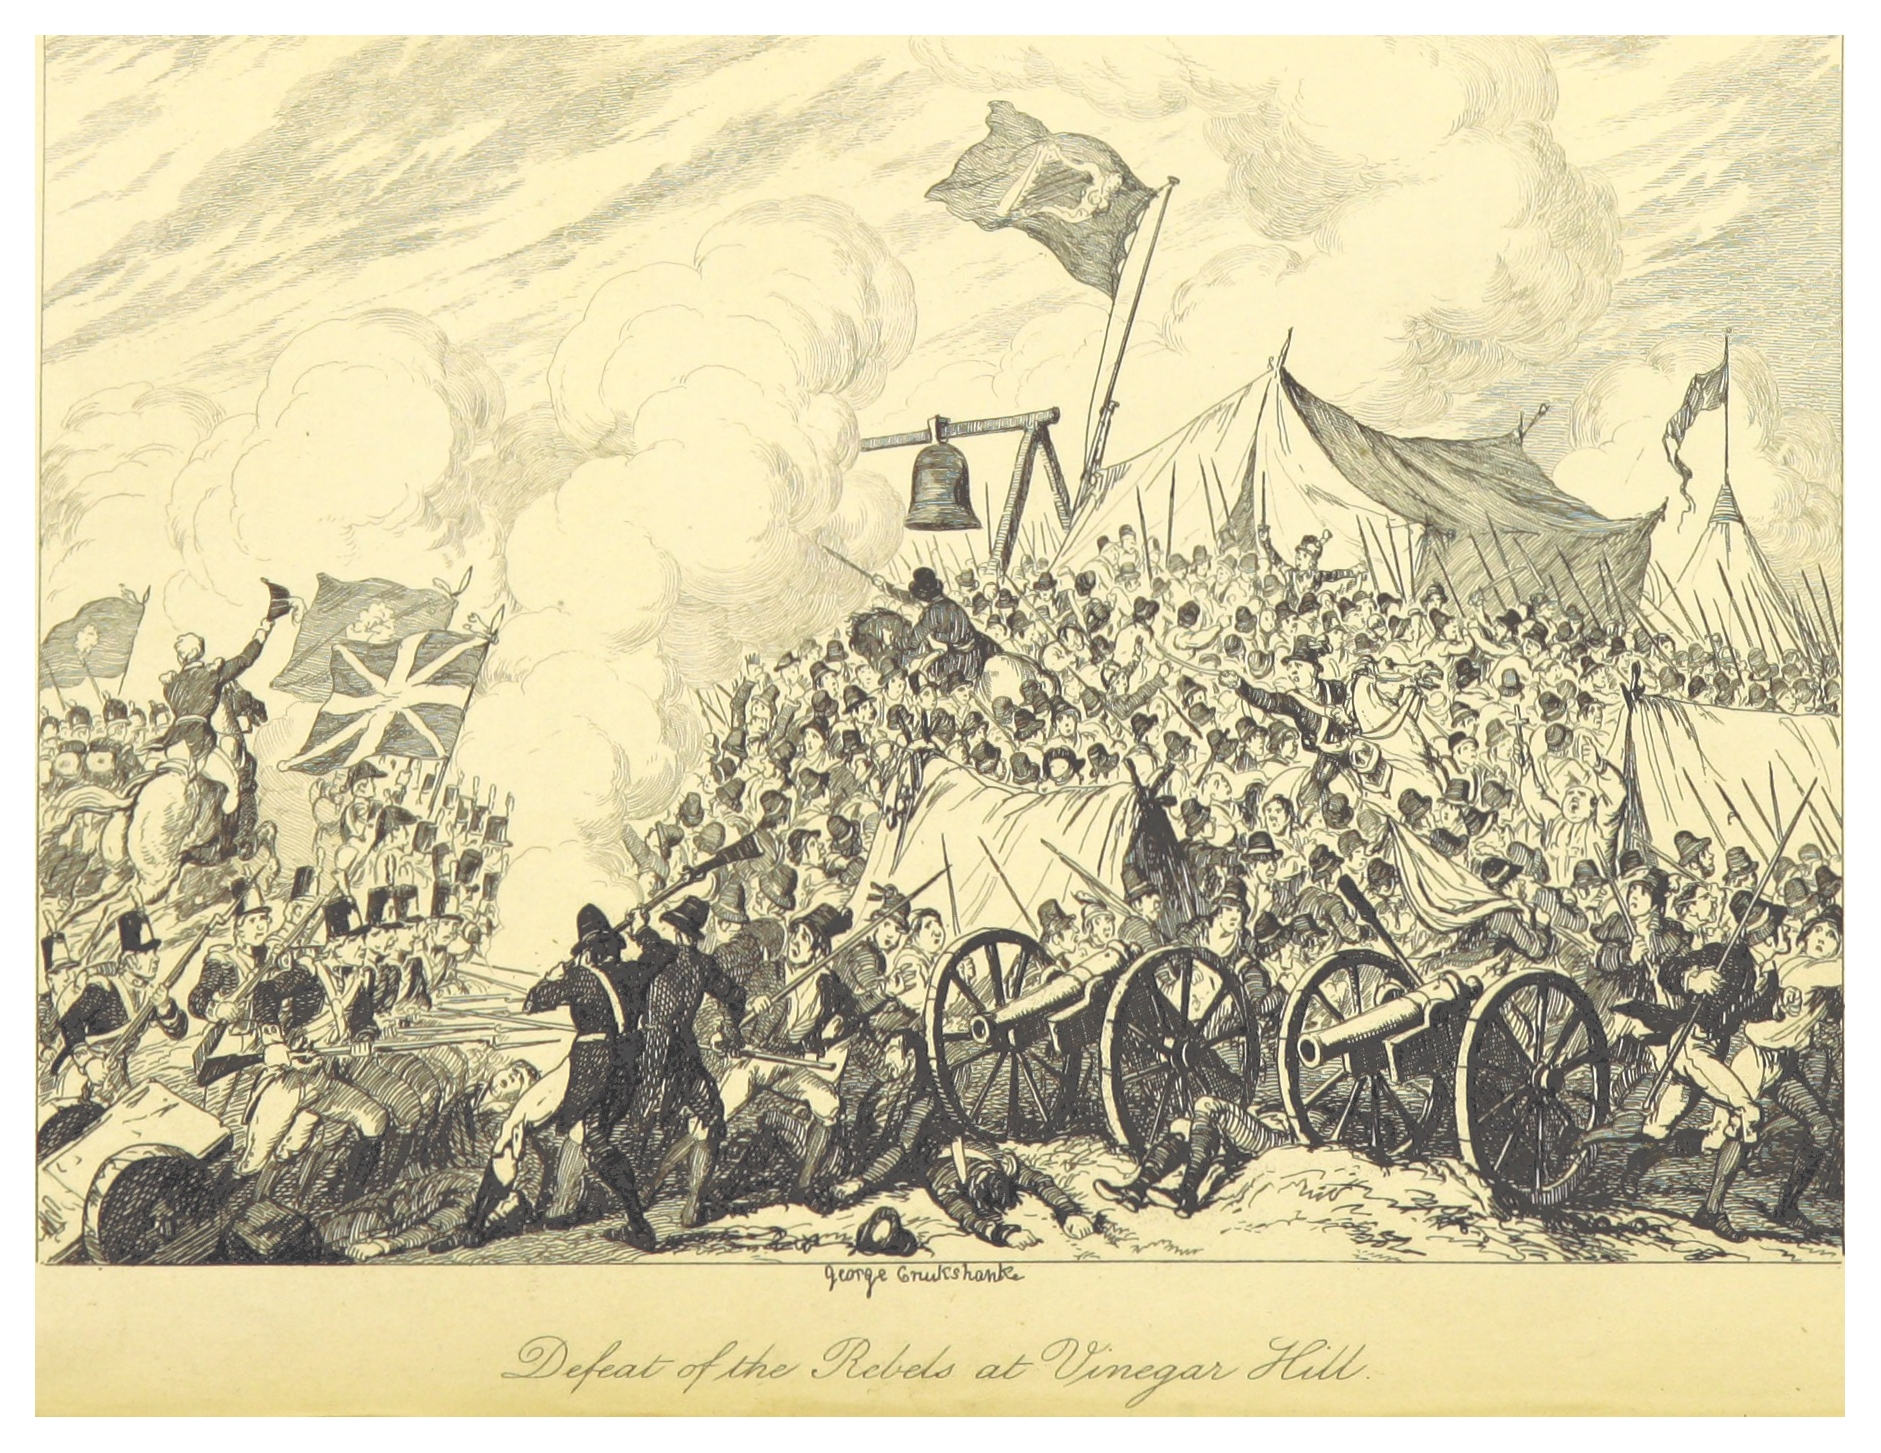 Defeat at Vinegar Hill - illustrated by George Cruikshank (1845).